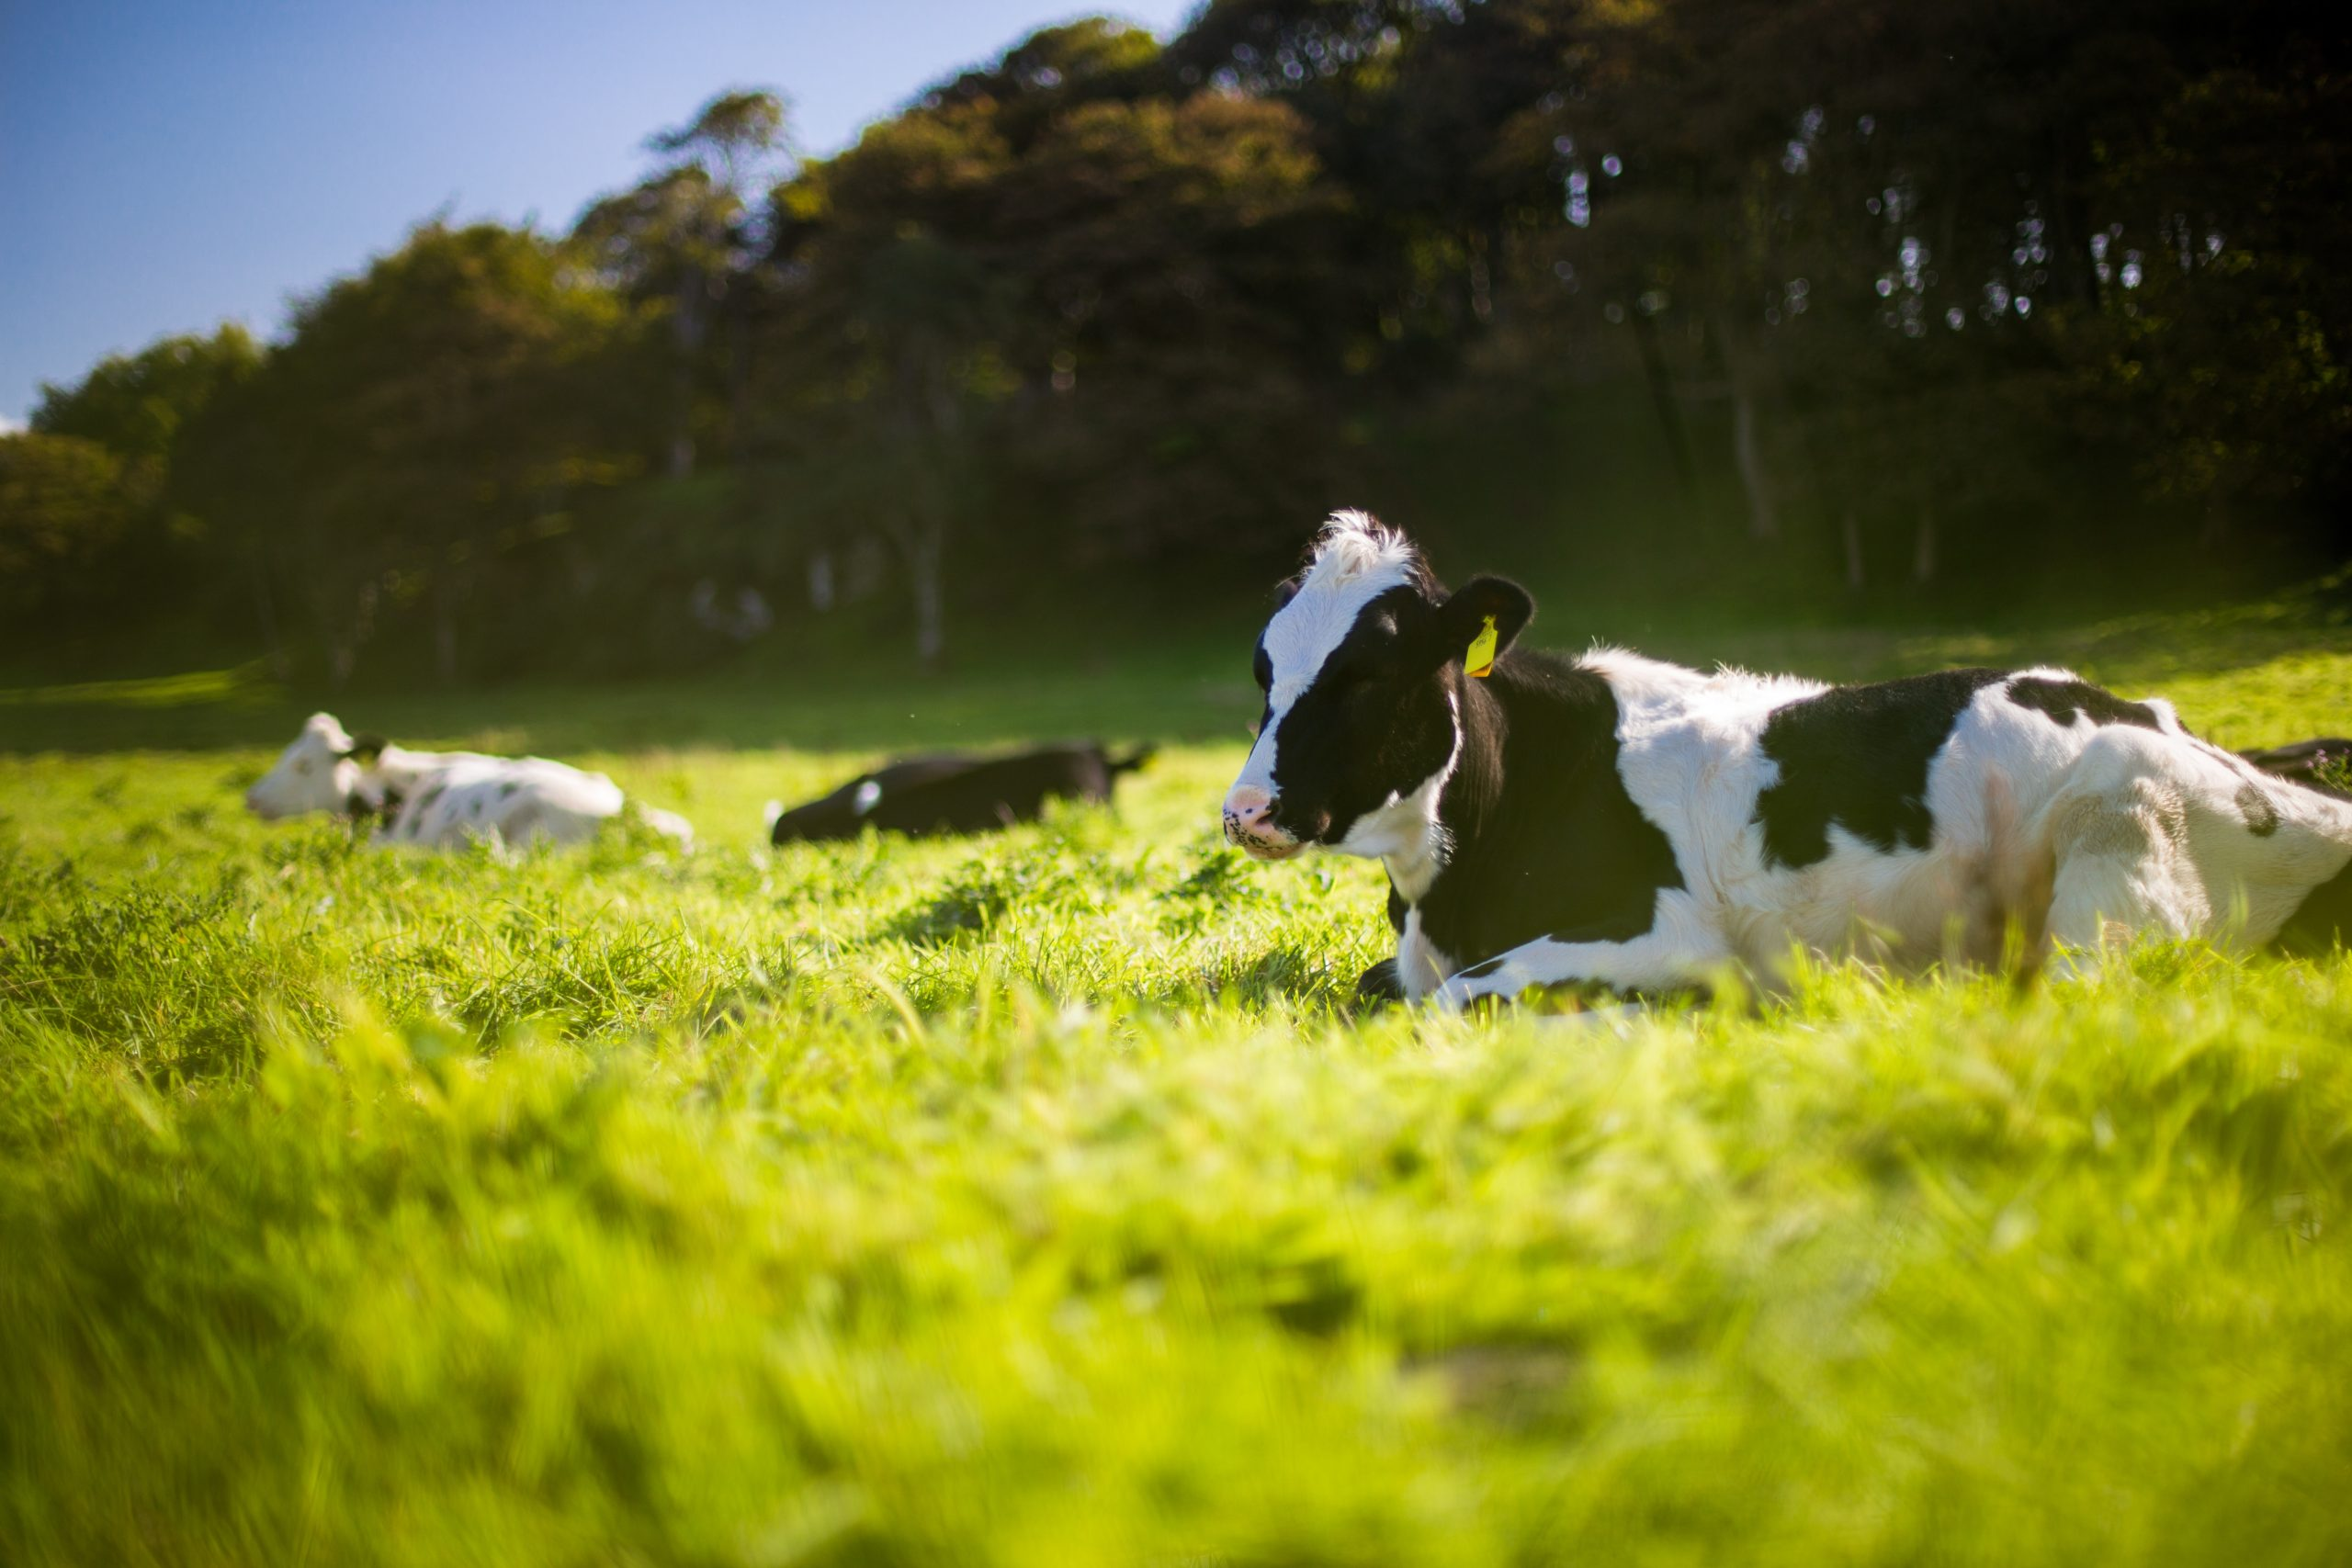 Peabody praised for transforming Wilkie Creek site into grazing land